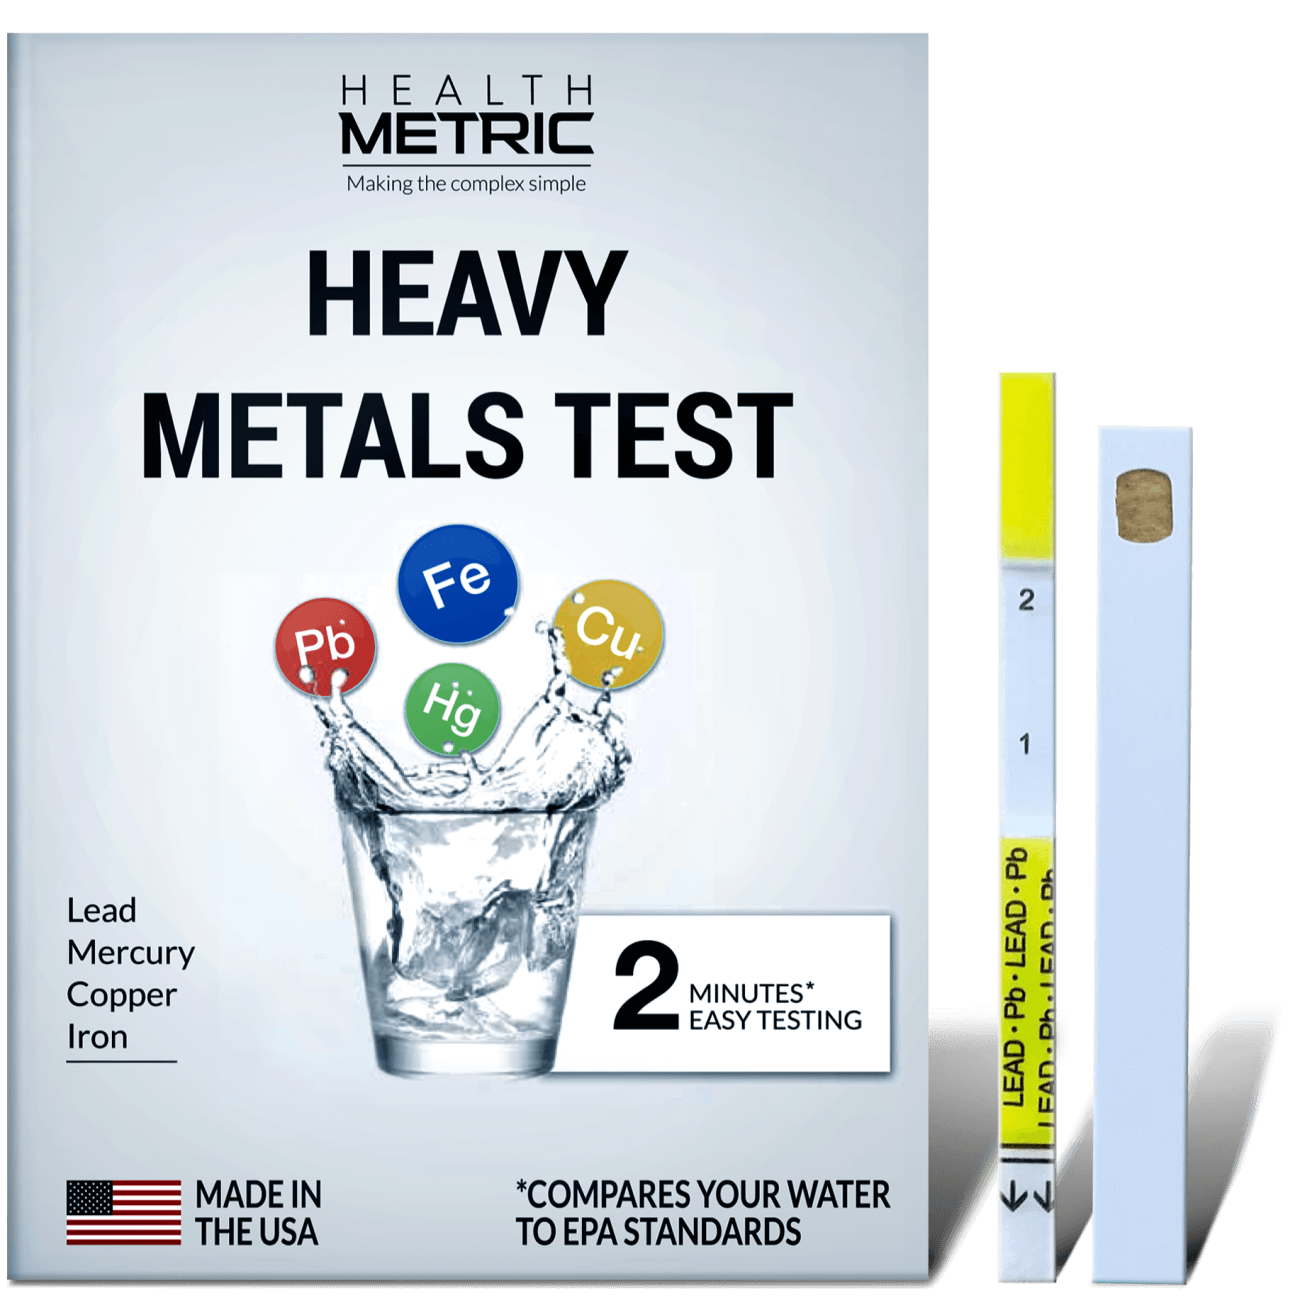 Heavy Metals Home Test Kit - Lead, Mercury, Copper, Iron